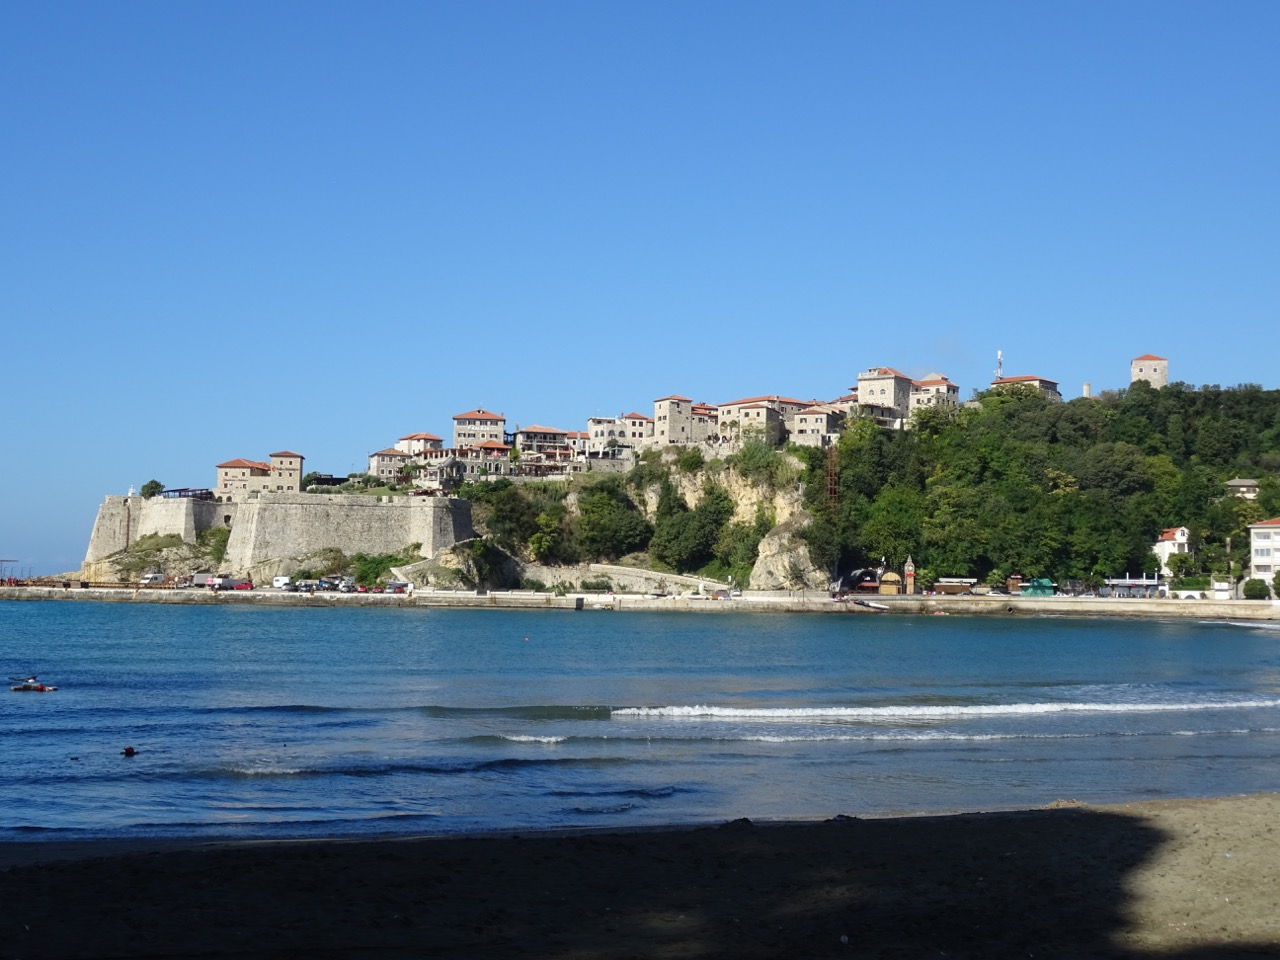 The Old Town of Ulcinj